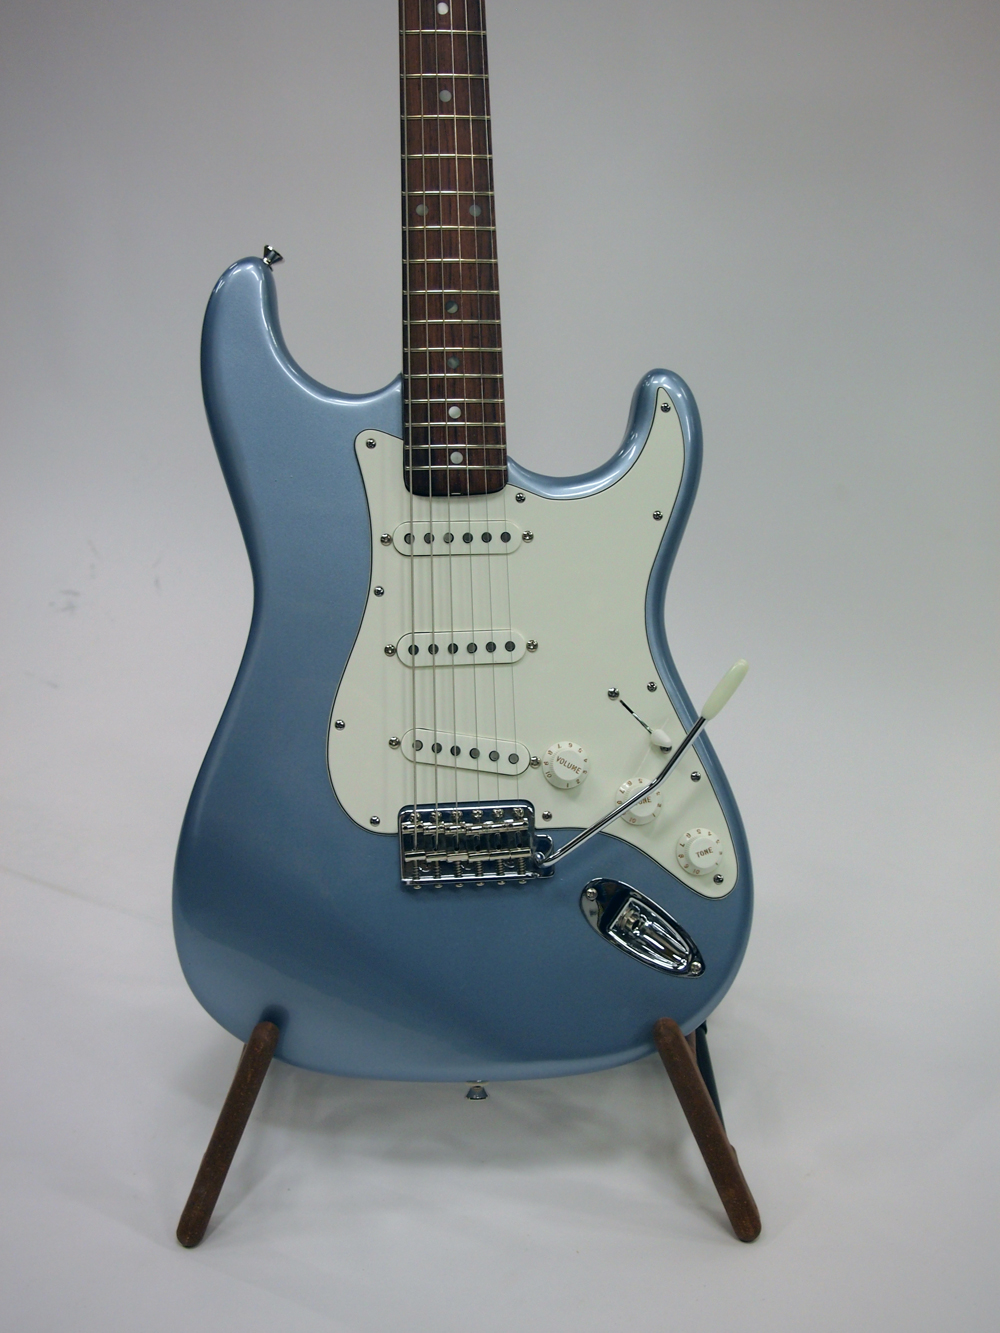 Ice Blue Metallic Vintage Guitar